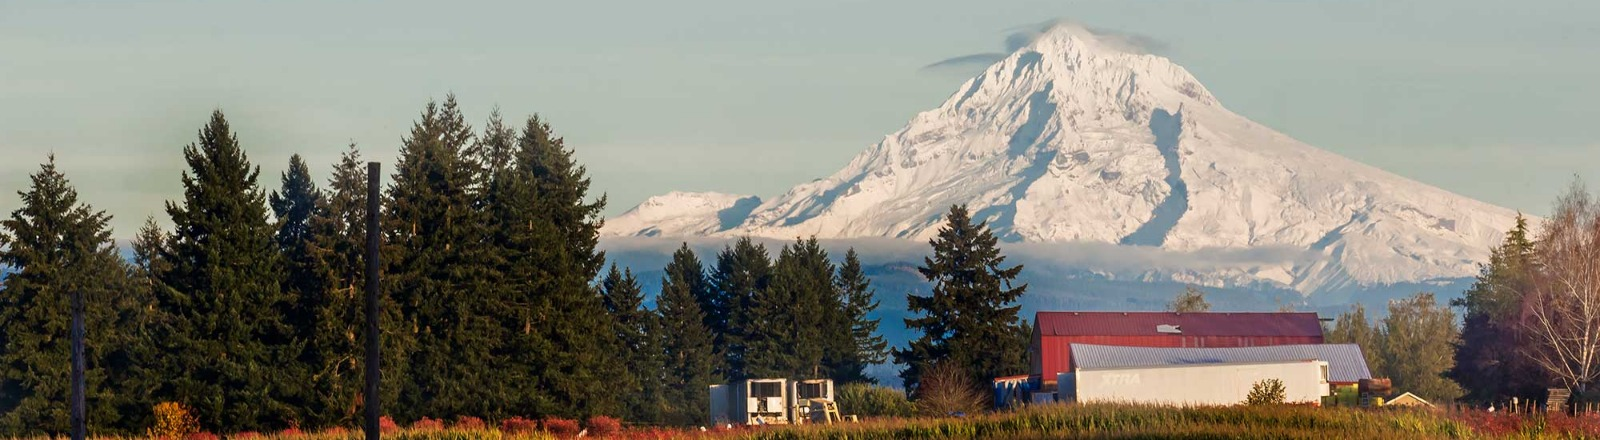 Liepold Farm in Boring corn fall festival with mt hood in the background in oregon's mt hood territory